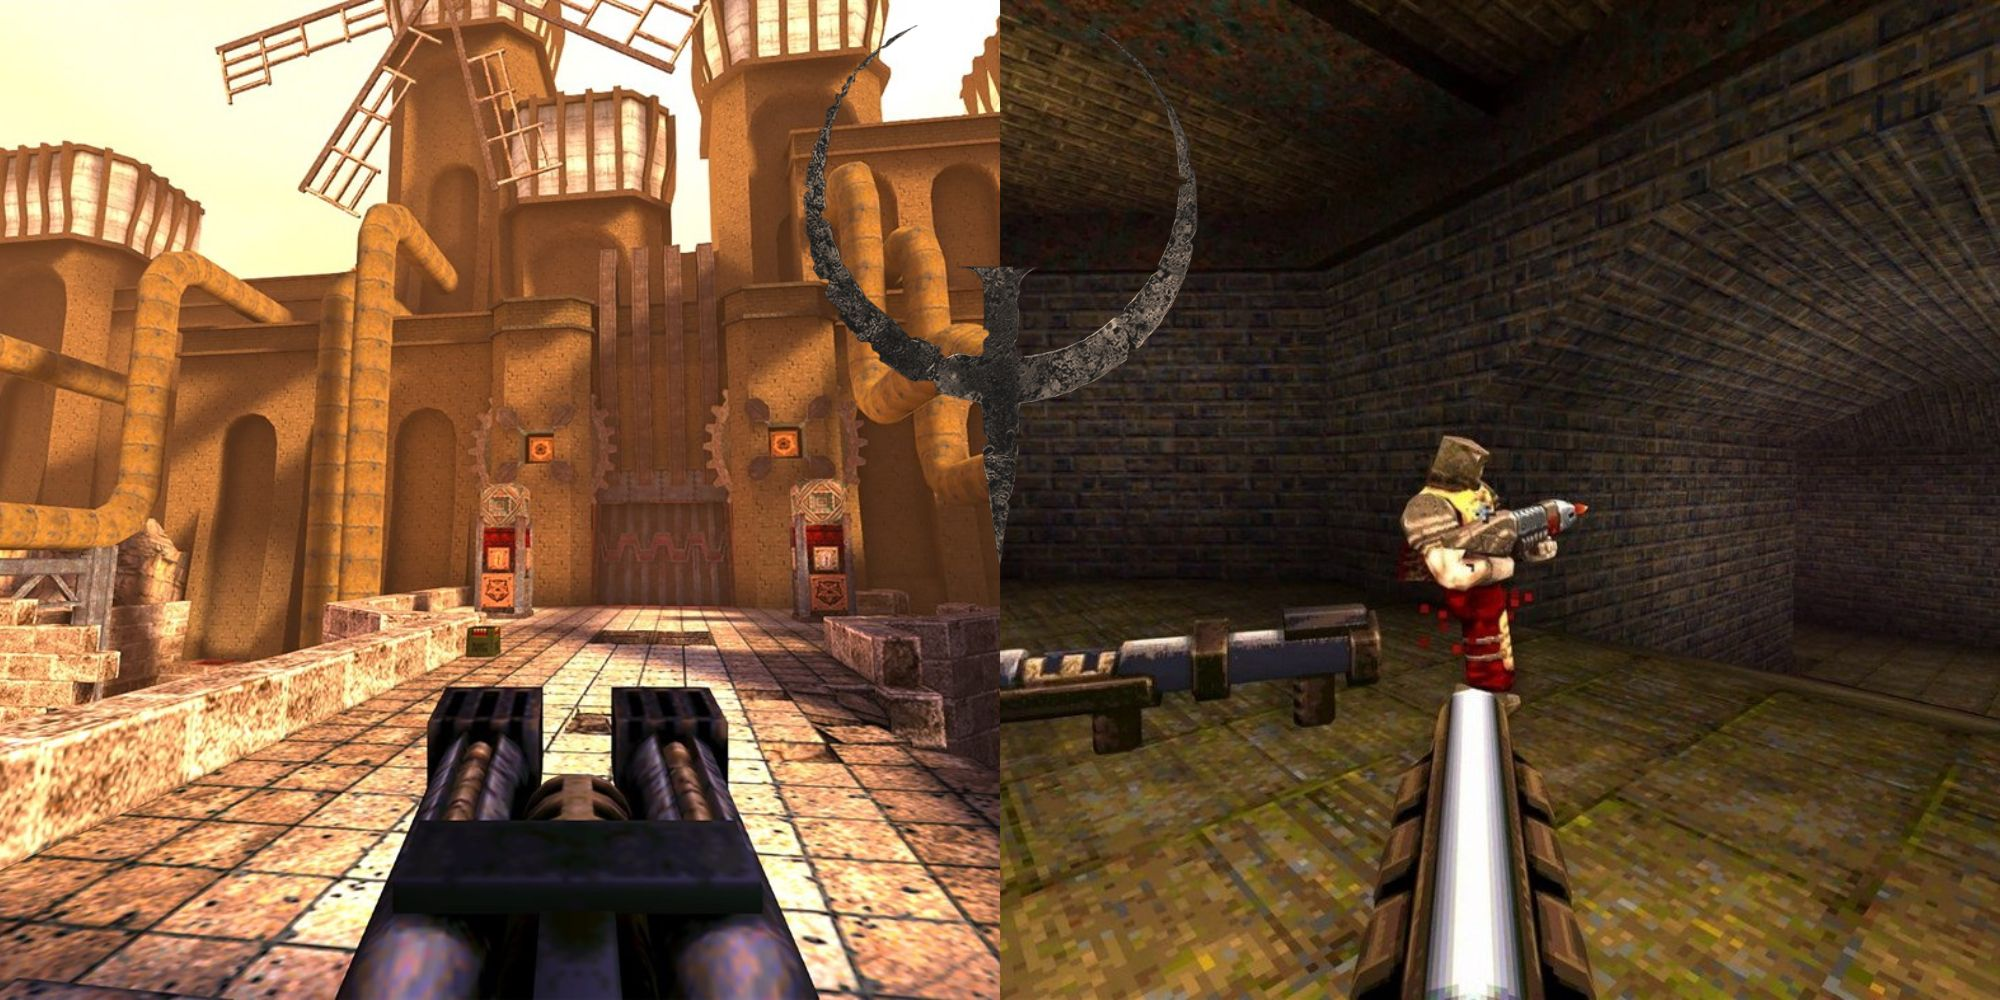 Quake Remastered Update Improves Multiplayer and Modding Support